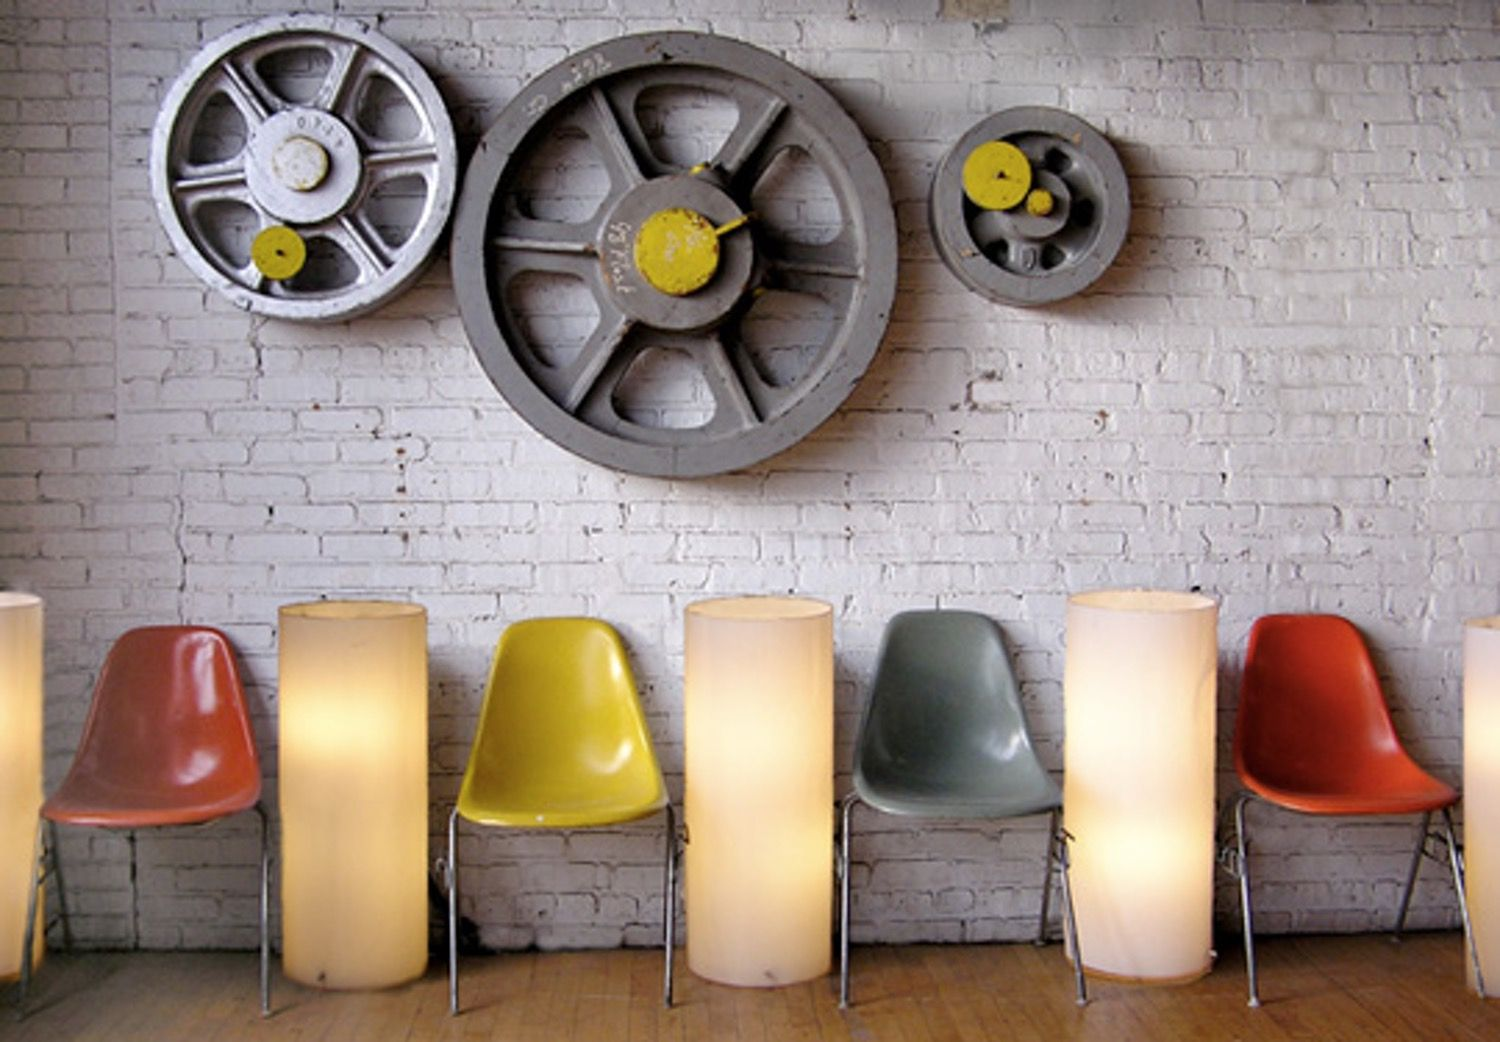 How to collect quality furniture when you donut have much money